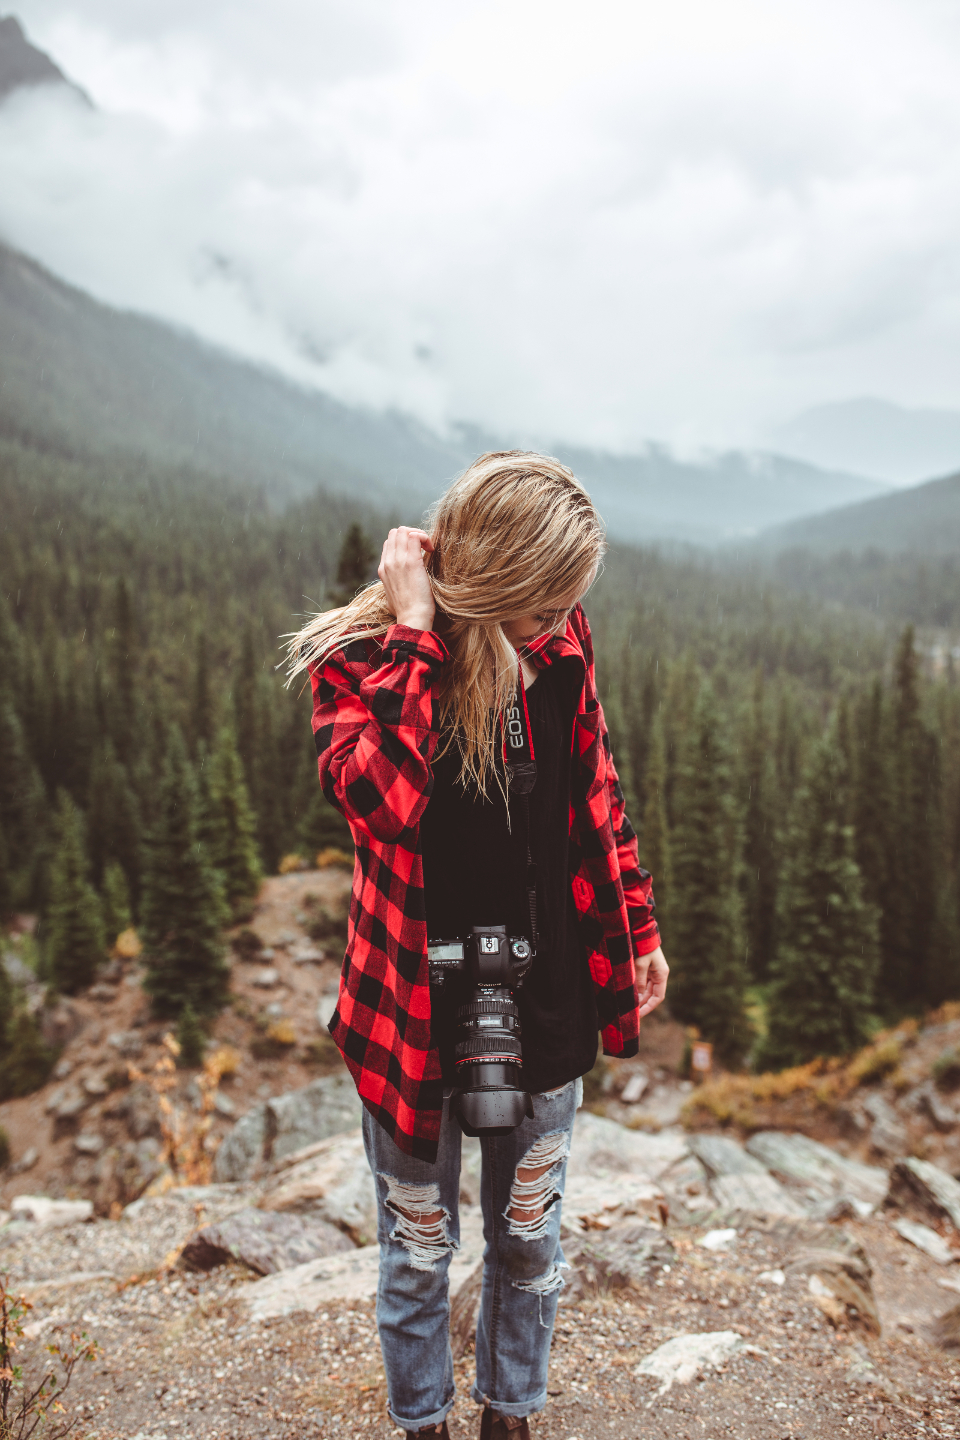 girl blonde woman hair camera photographer hipster flannel mountains mountain nature earth trees forest